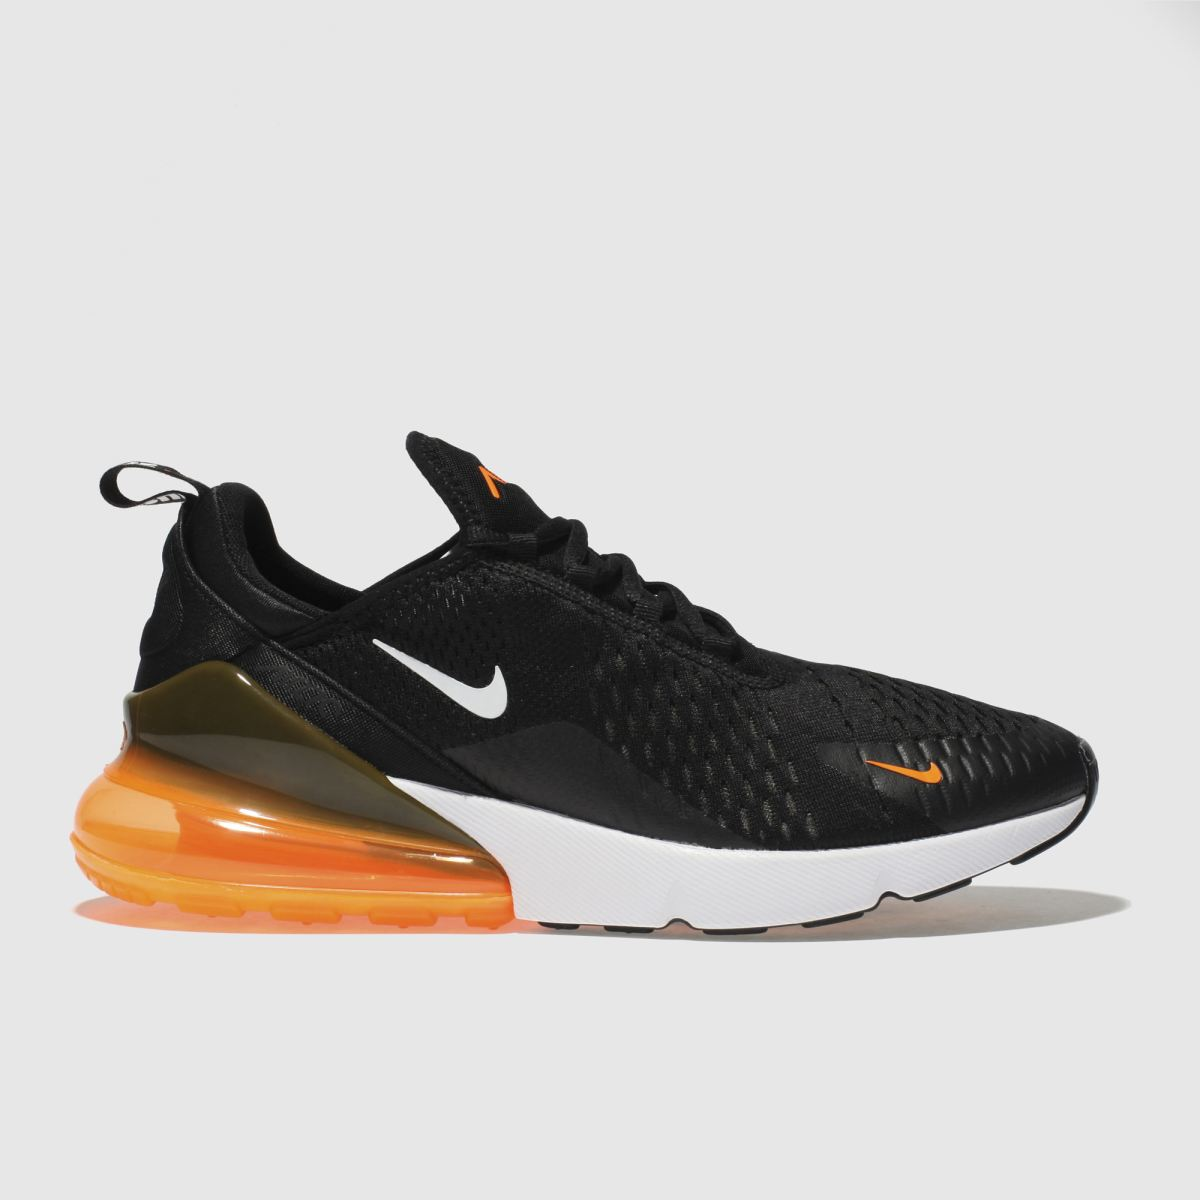 Nike Black & Orange Air Max 270 Jdi Trainers